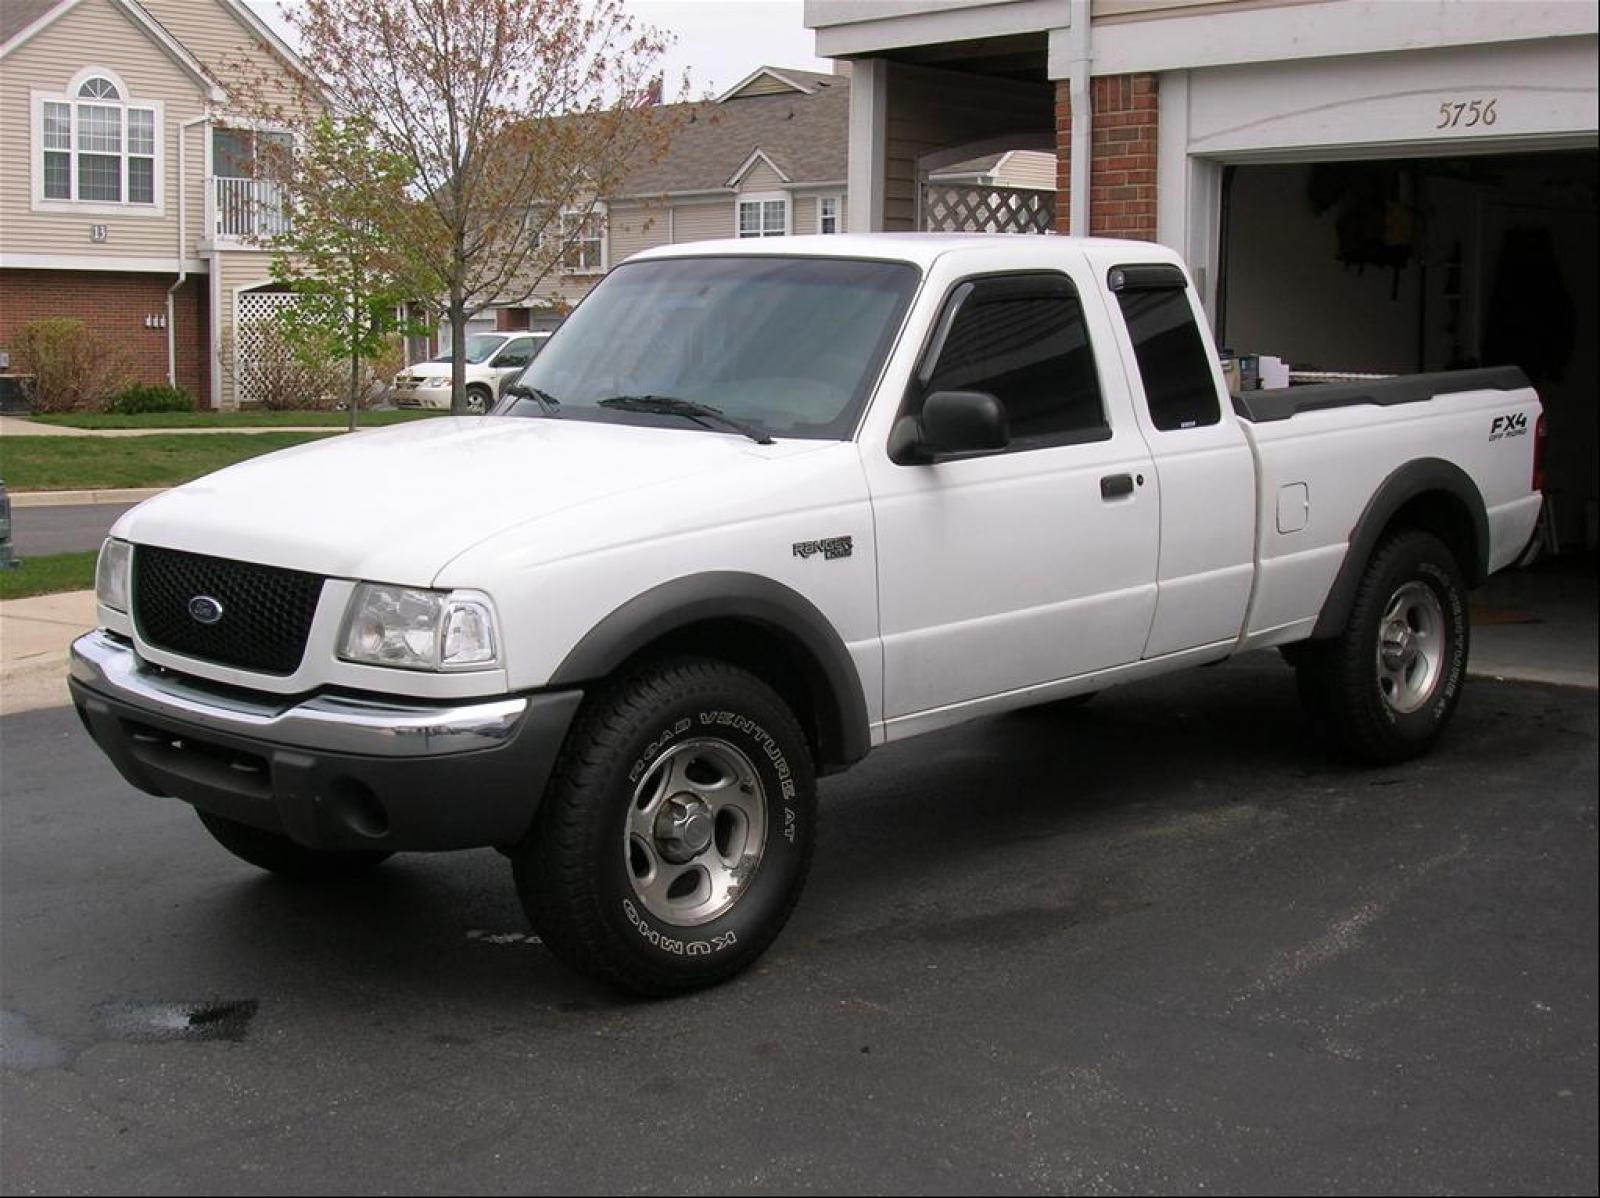 2001 Ford Ranger - Information and photos - Zomb Drive